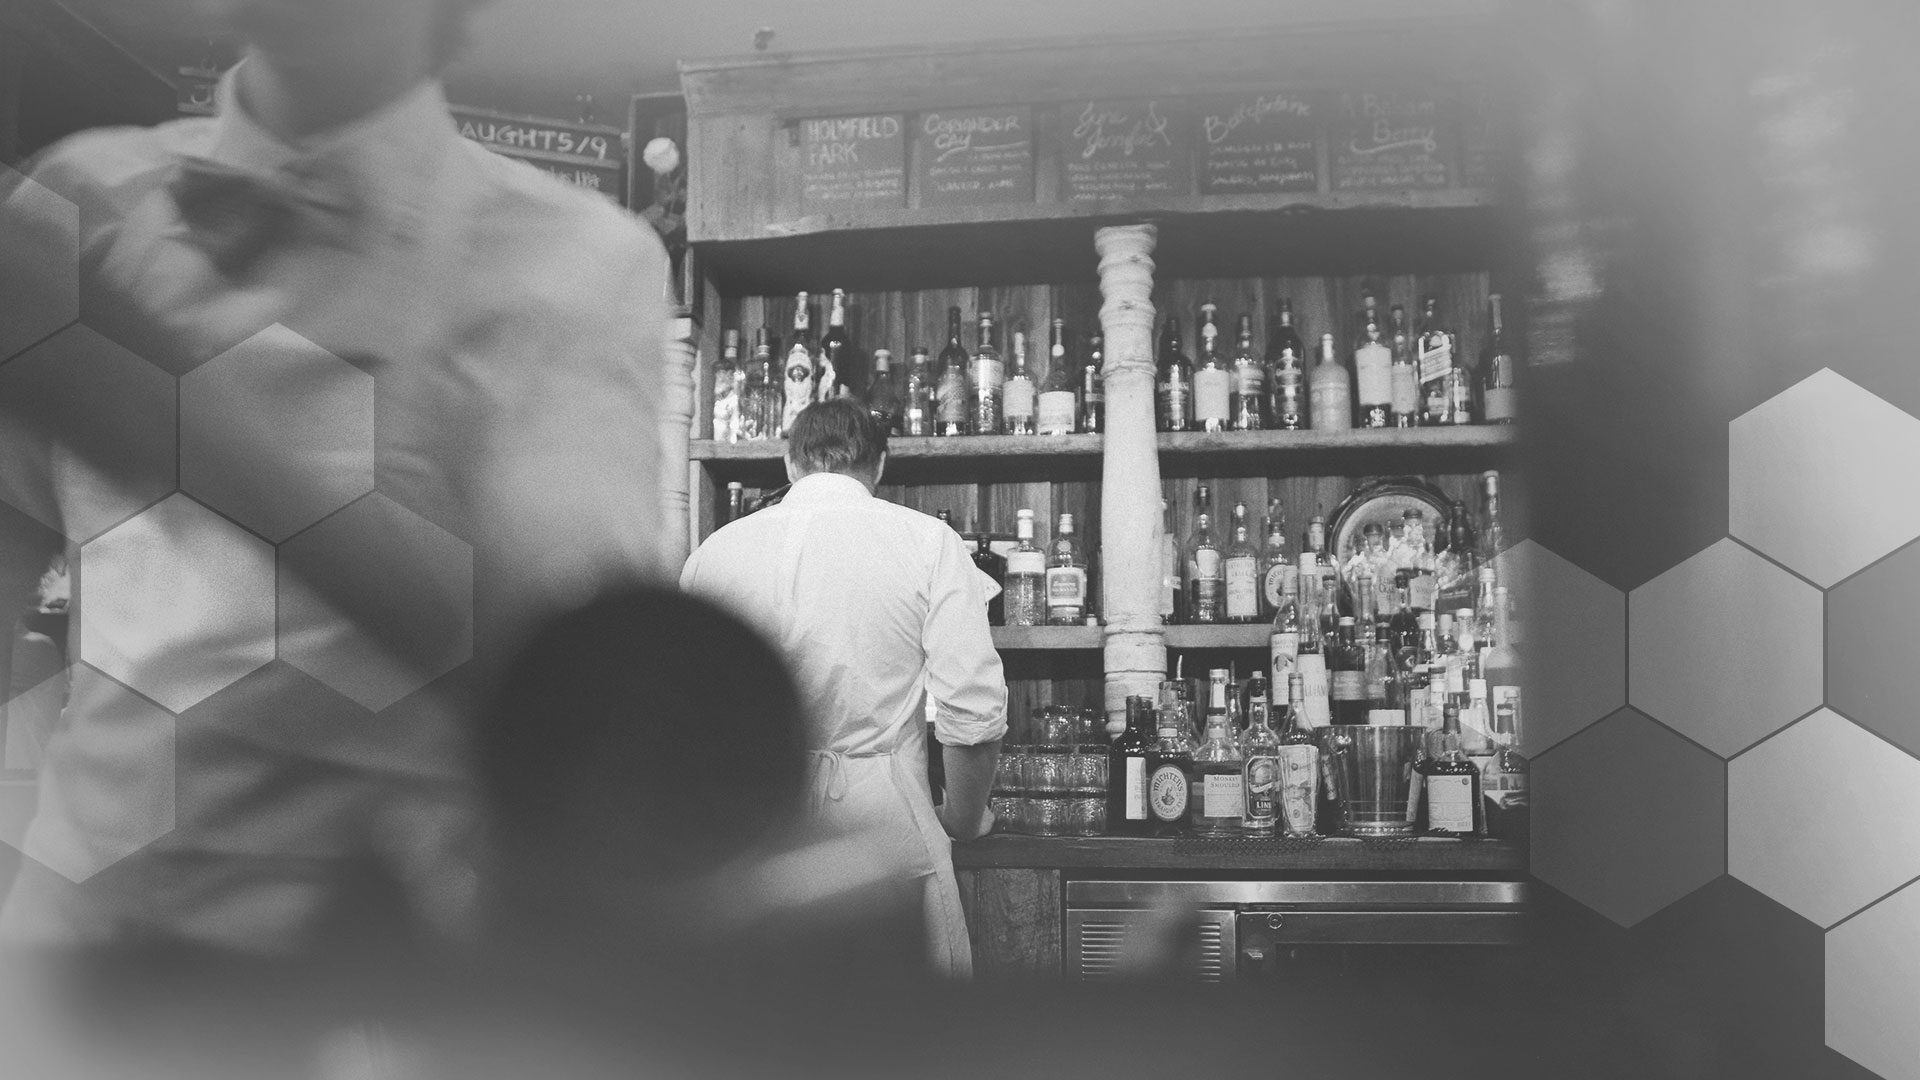 A monochrome scene at a busy restaurant bar.